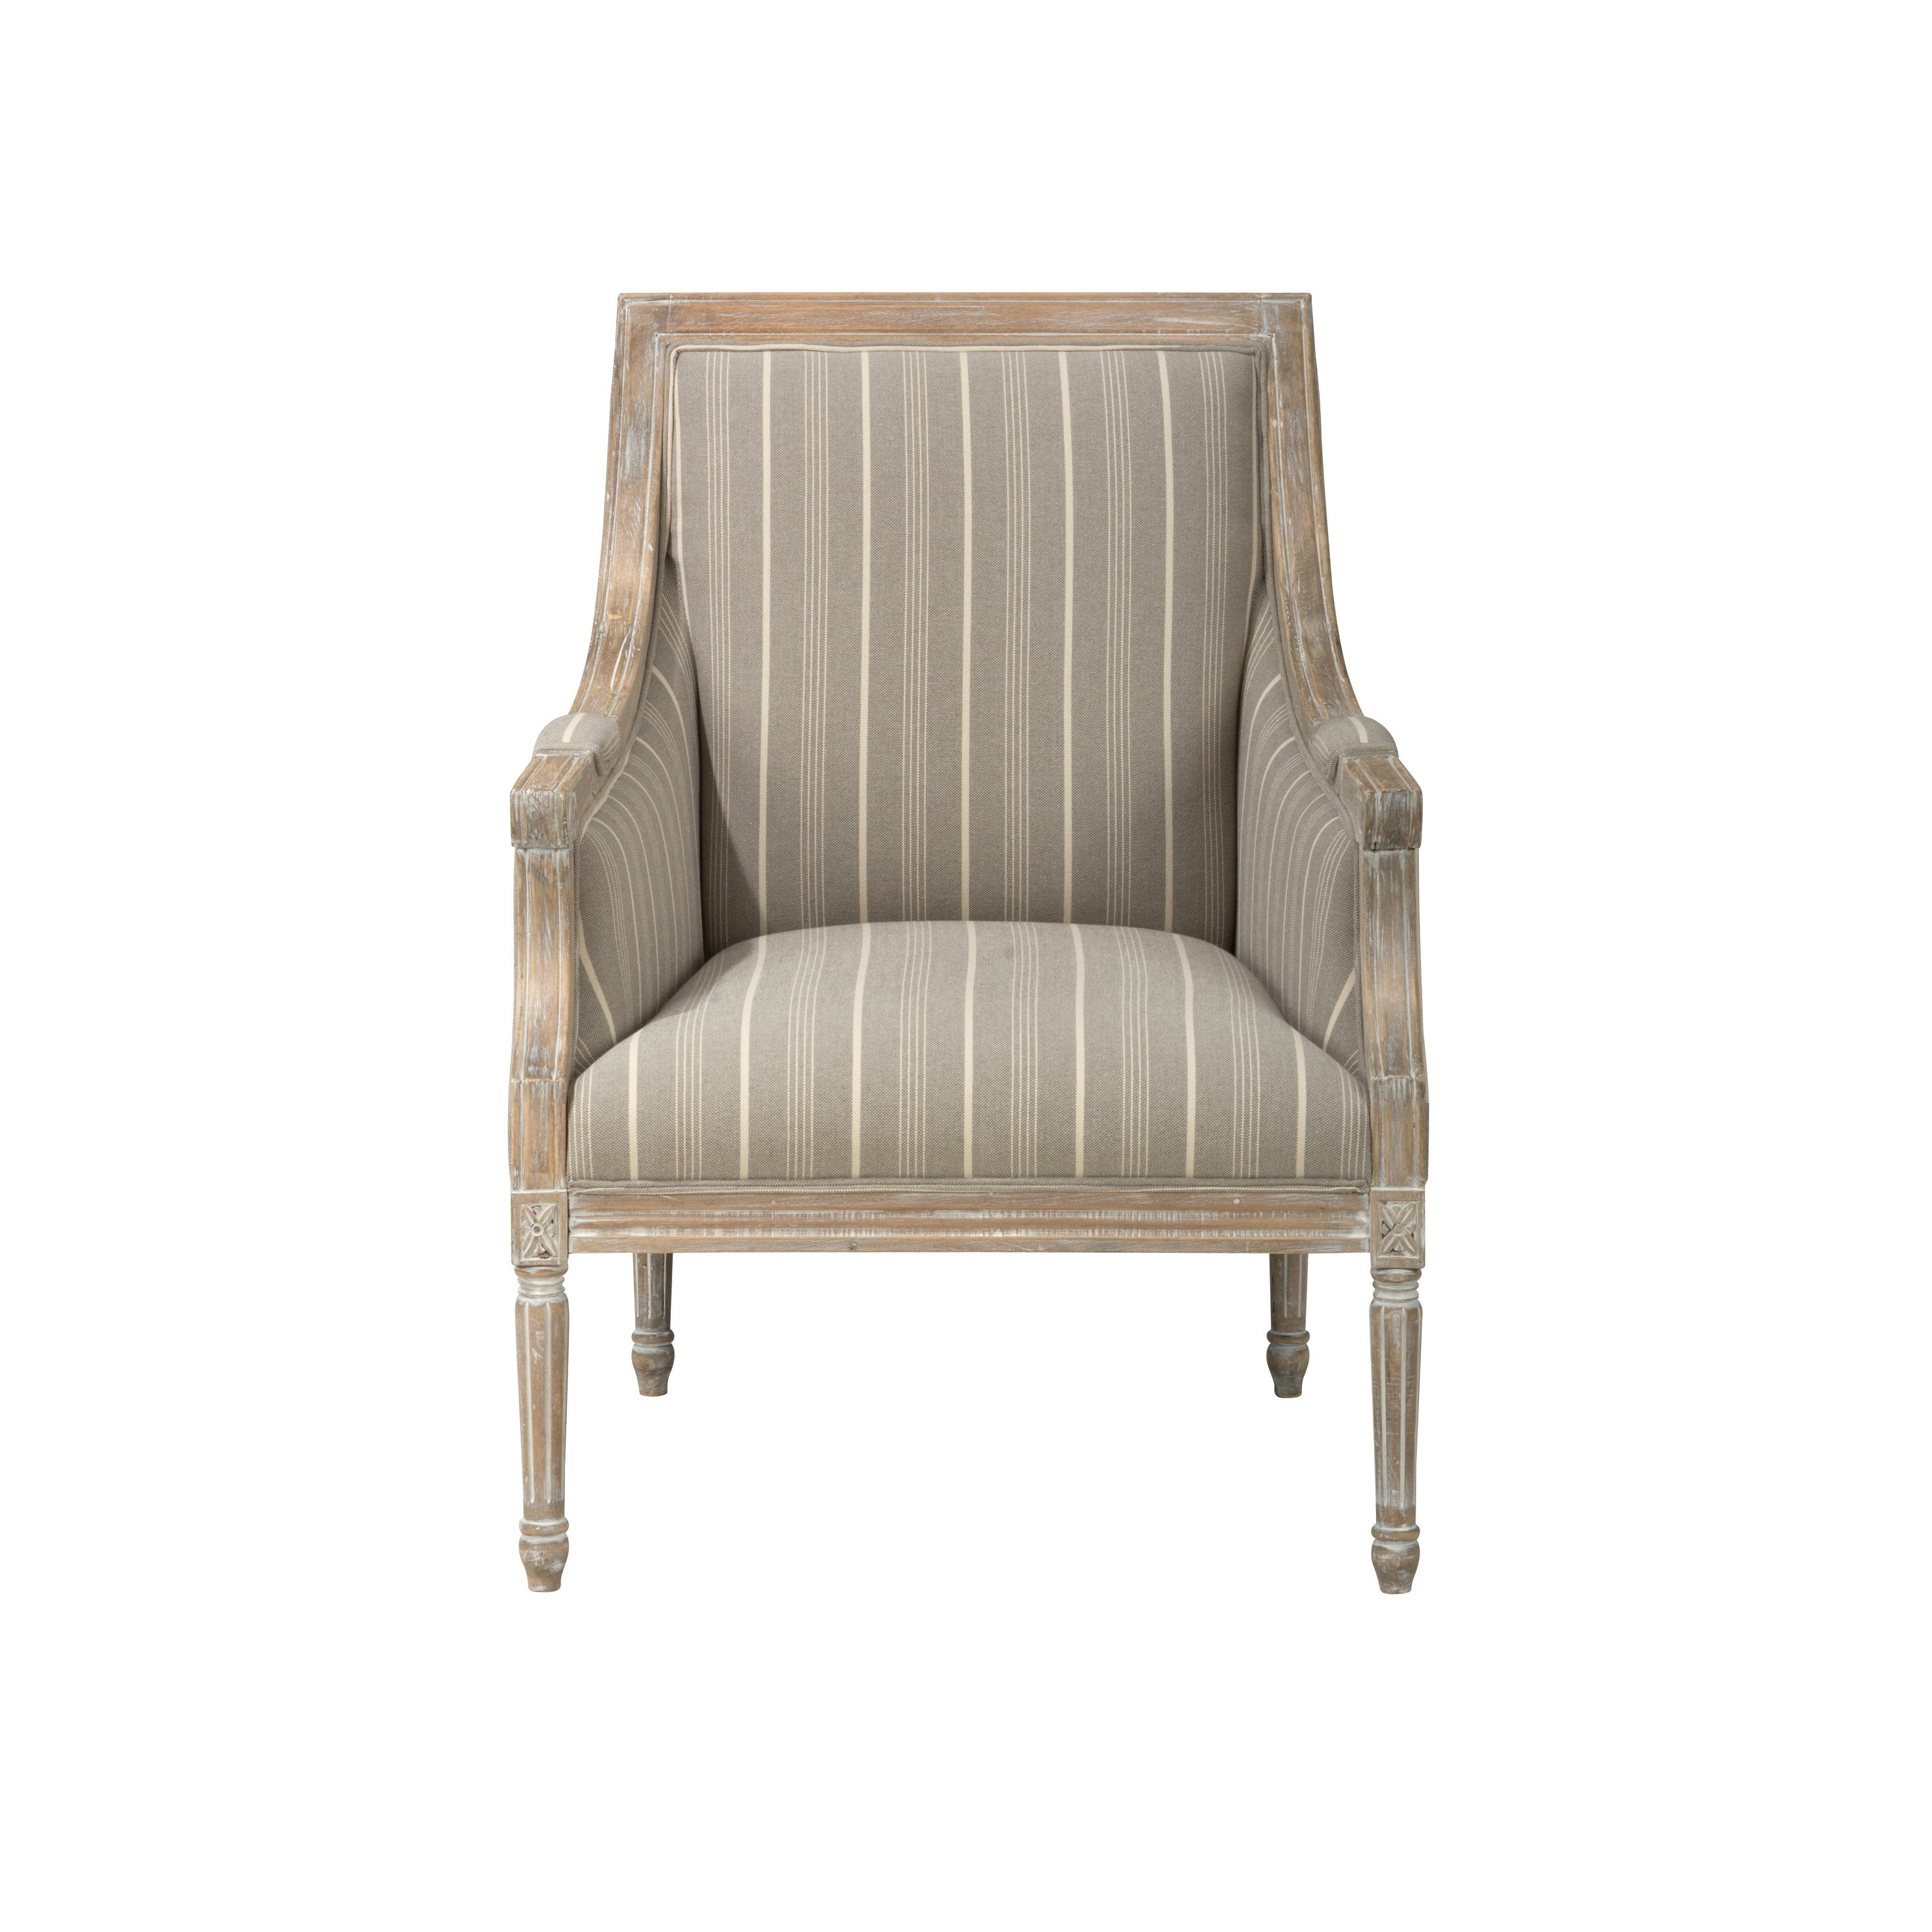 Shop distressed wooden frame accent chair with fabric upholstery taupe gray and brown on sale free shipping today overstock com 23500556